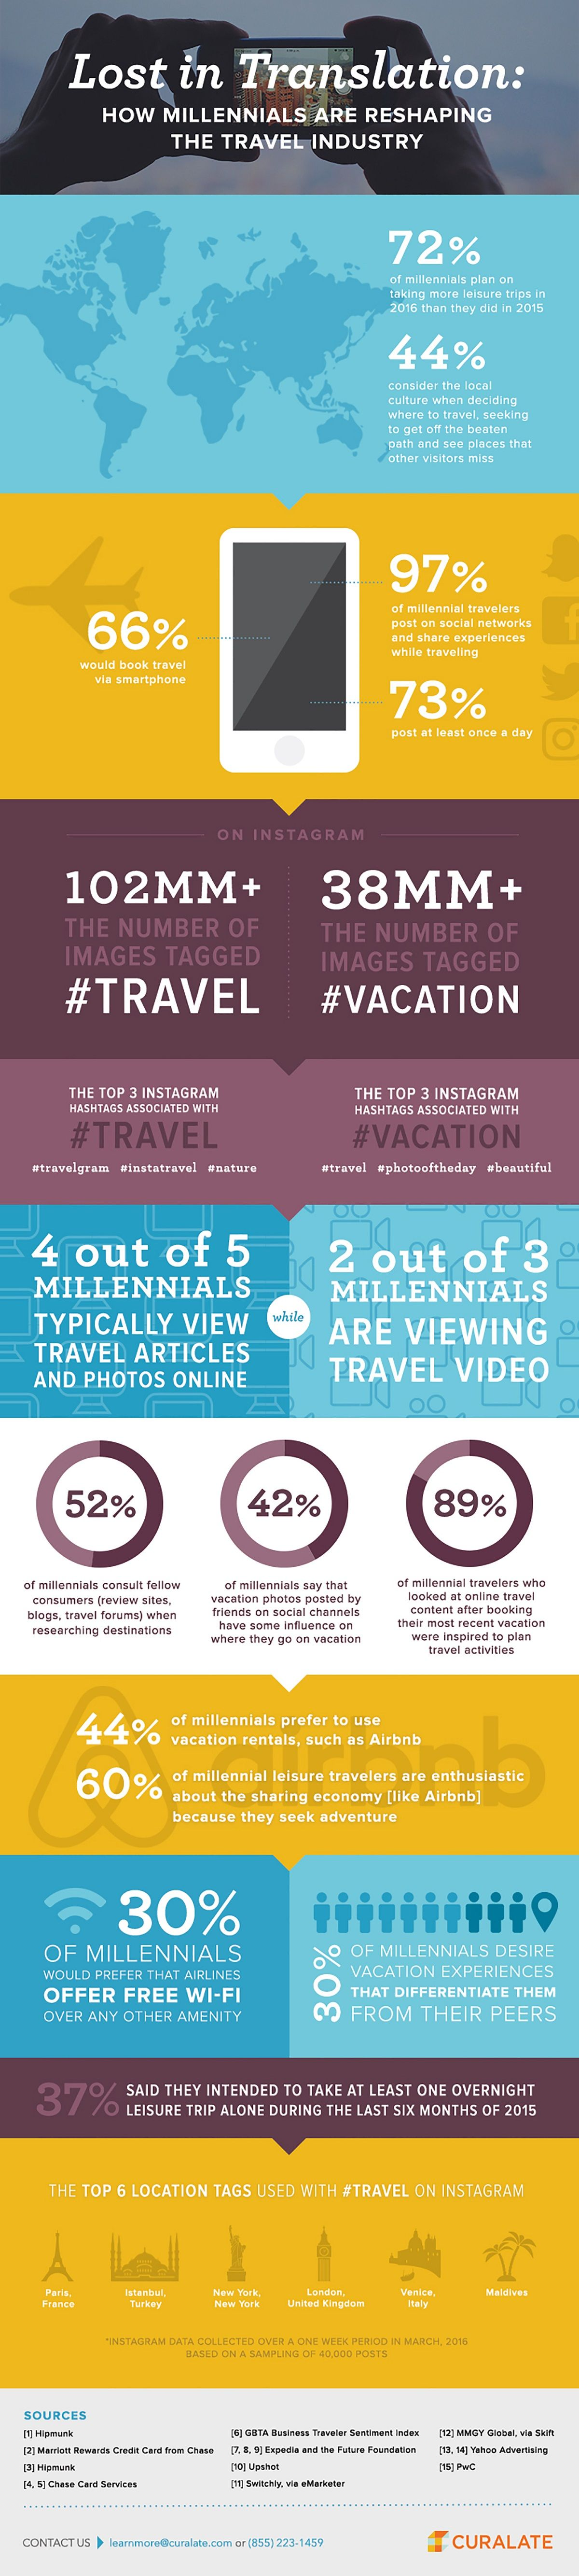 How Millennials Are Reshaping the Travel Industry